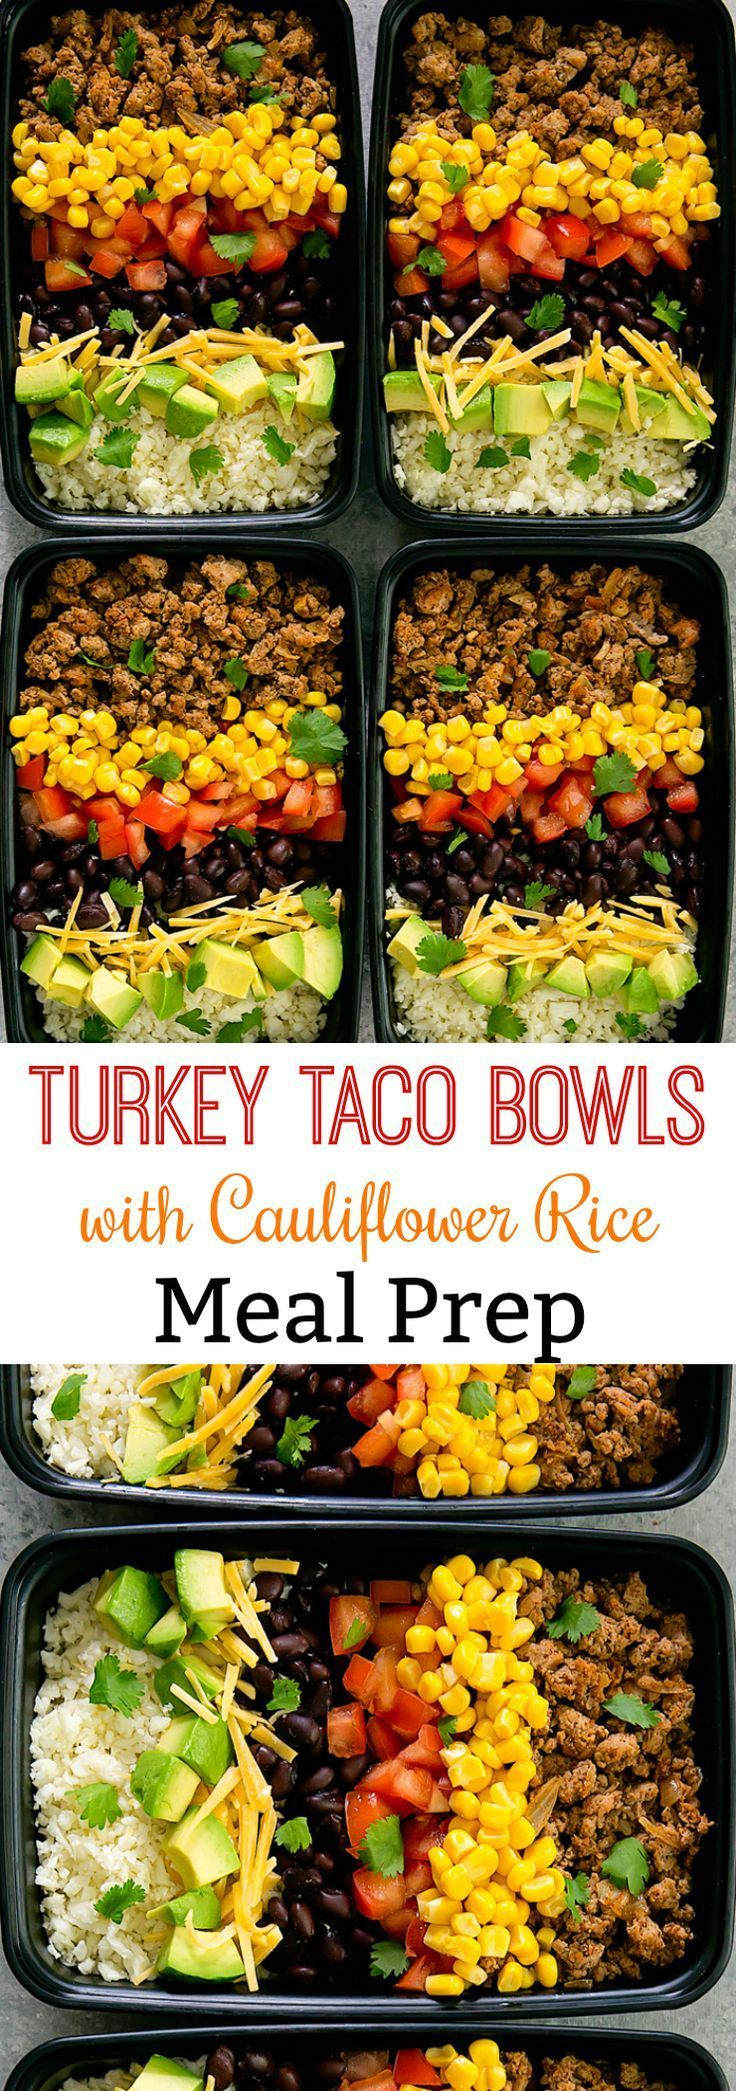 Turkey Taco Bowls with Cauliflower Rice Meal Prep Skinny Turkey Taco Bowls with Cauliflower Rice Meal Prep. Low carb, easy and flavorful! Taco Bowls with Cauliflower Rice Meal Prep Skinny Turkey Taco Bowls with Cauliflower Rice Meal Prep. Low carb, easy and flavorful!Skinny Turkey Taco Bowls with Cauliflower Rice Meal Prep. Low carb, easy and flavorful!